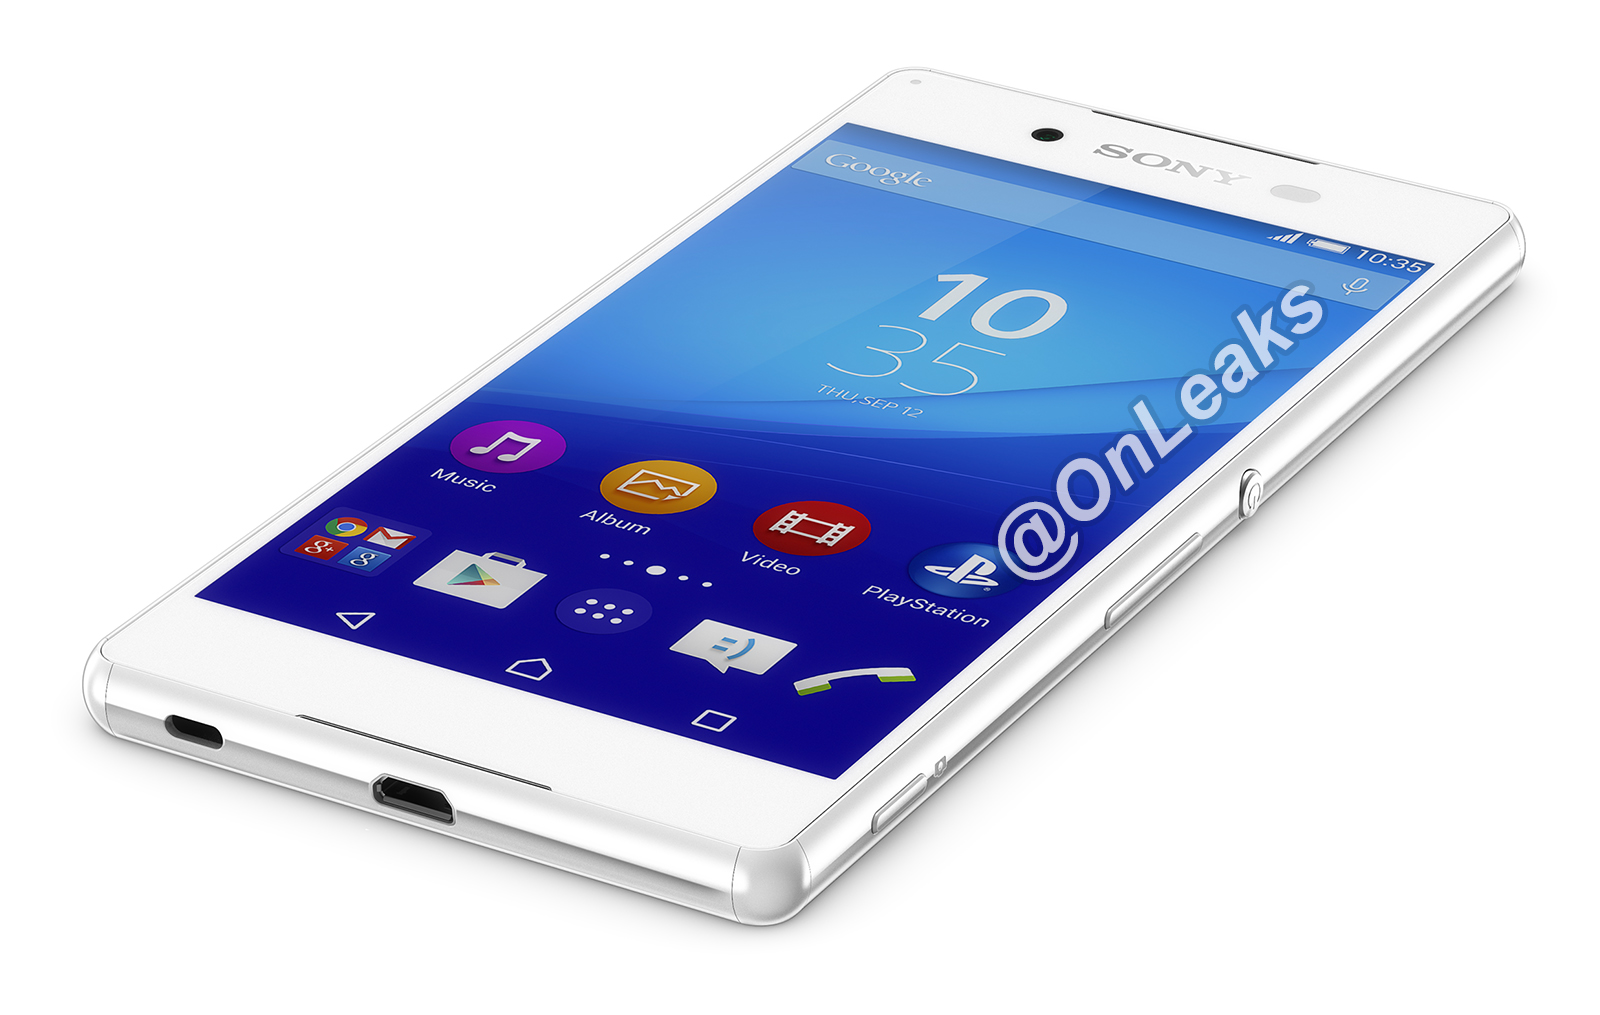 Alleged-Sony-Xperia-Z4-non-final-renders (1)